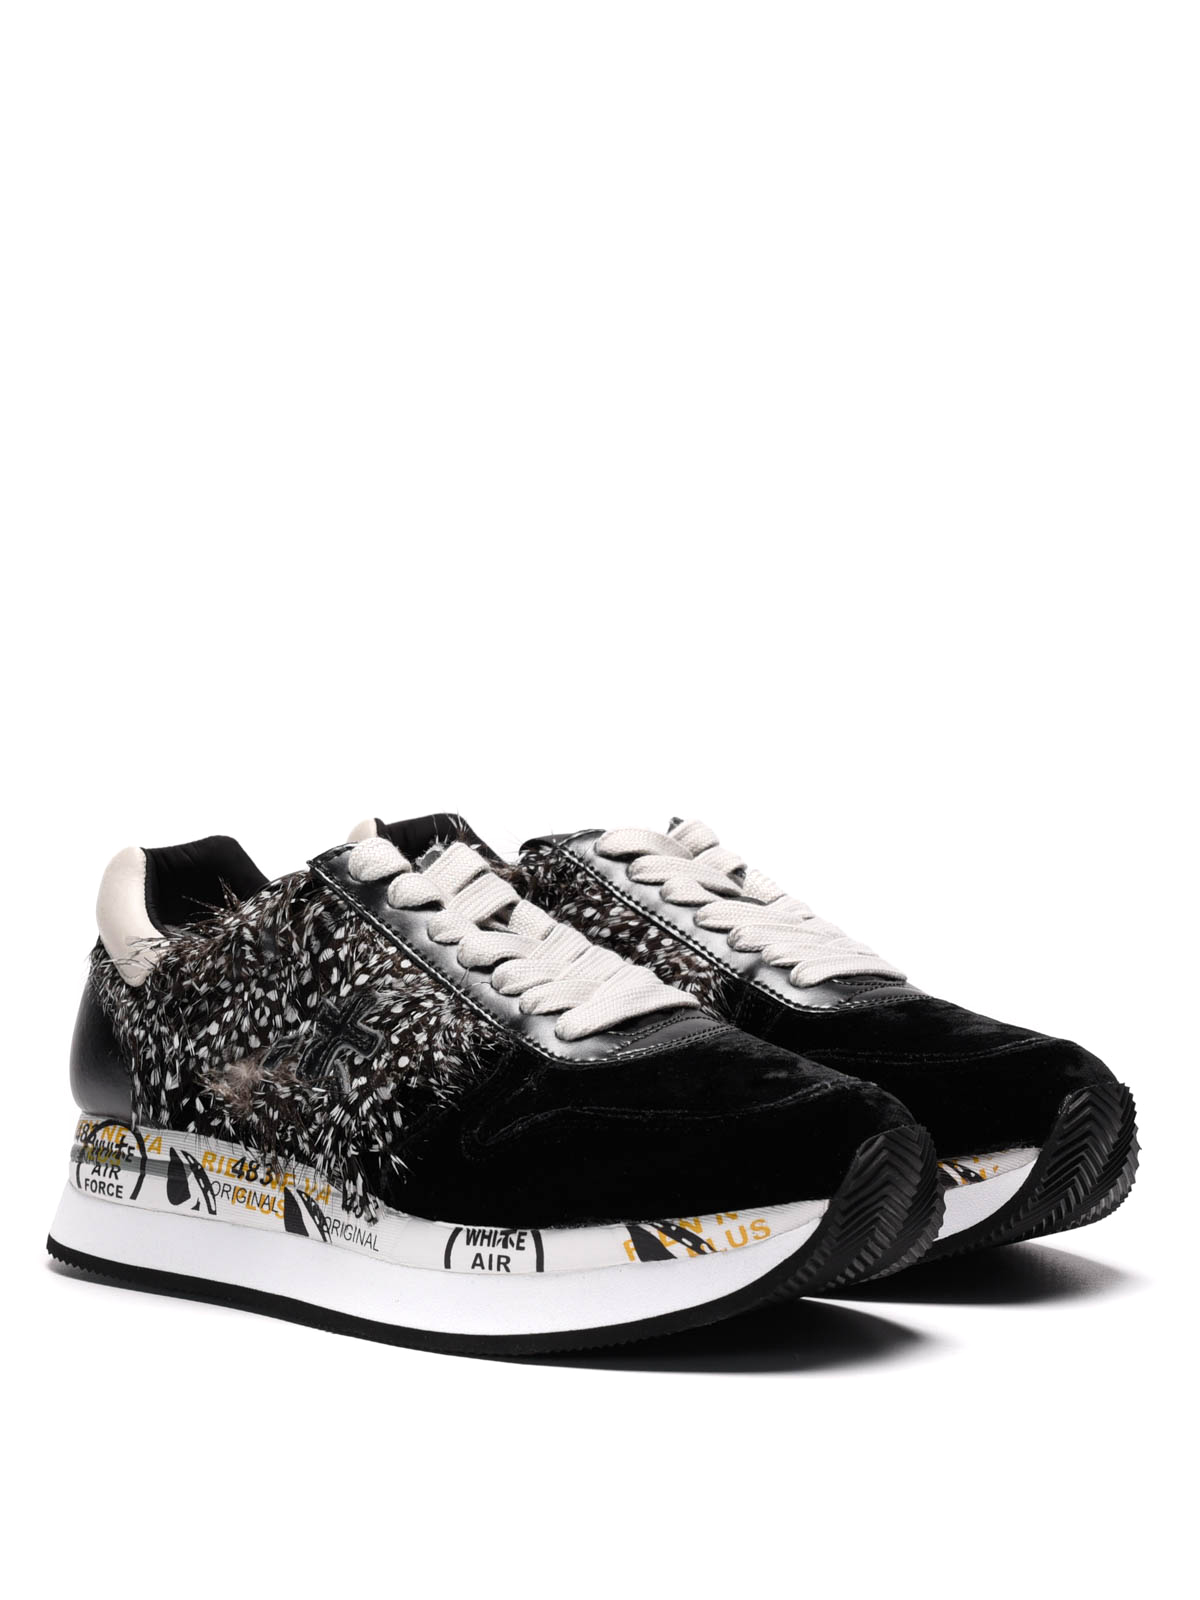 Premiata Holly Holly1767 Piume E Velluto In Sneaker Sneakers 181Og